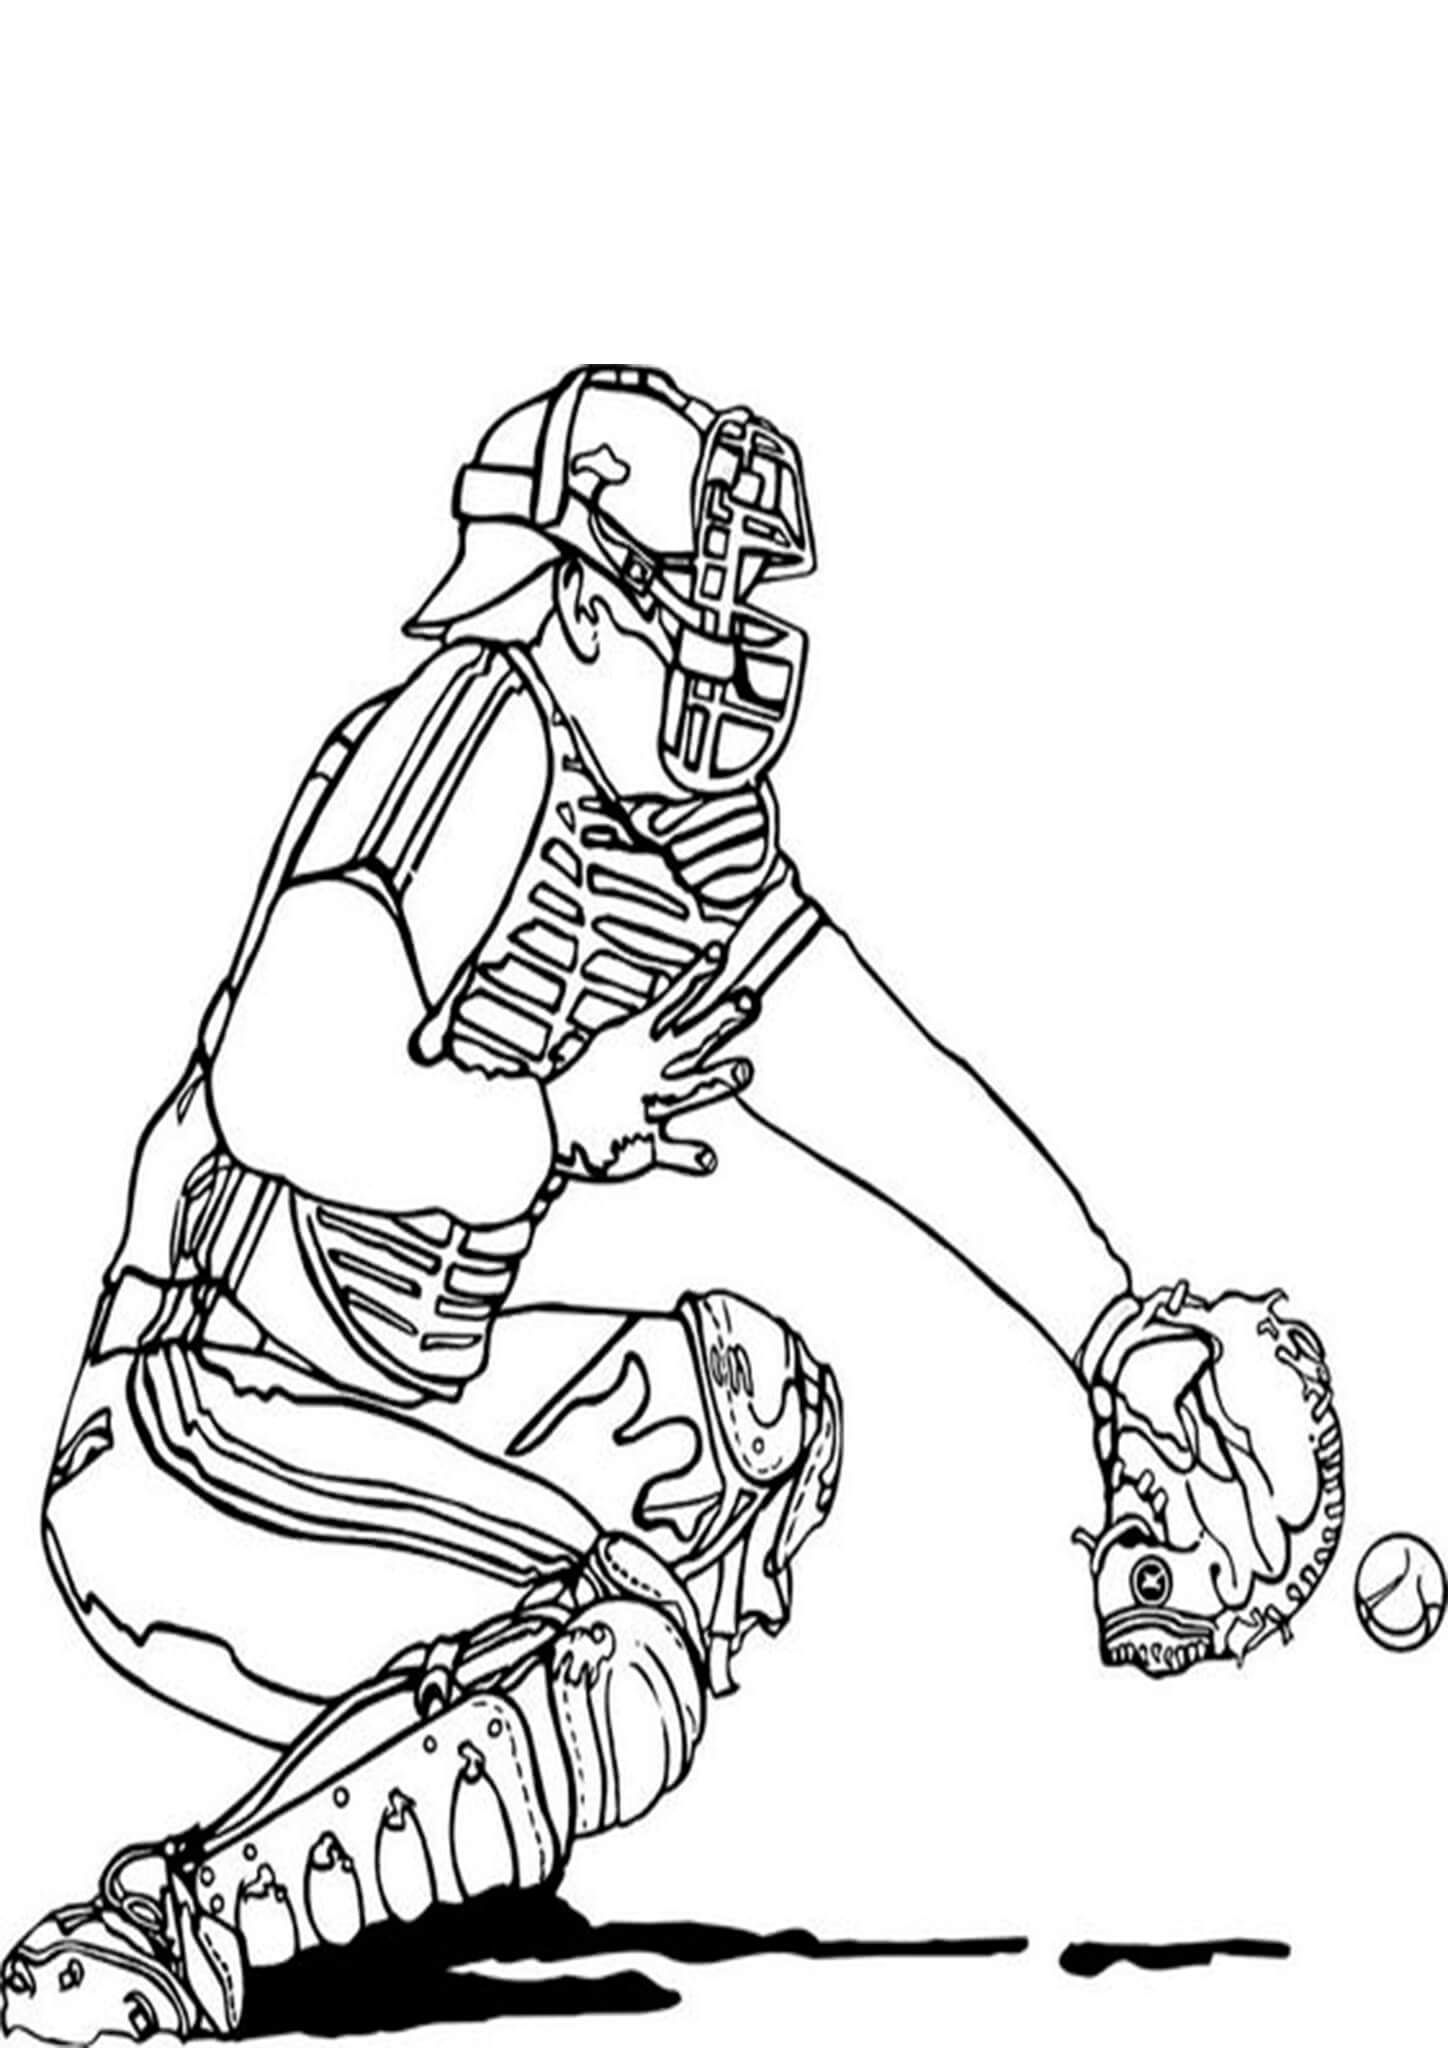 Free Easy To Print Baseball Coloring Pages In 2021 Baseball Coloring Pages Coloring Pictures Sports Coloring Pages